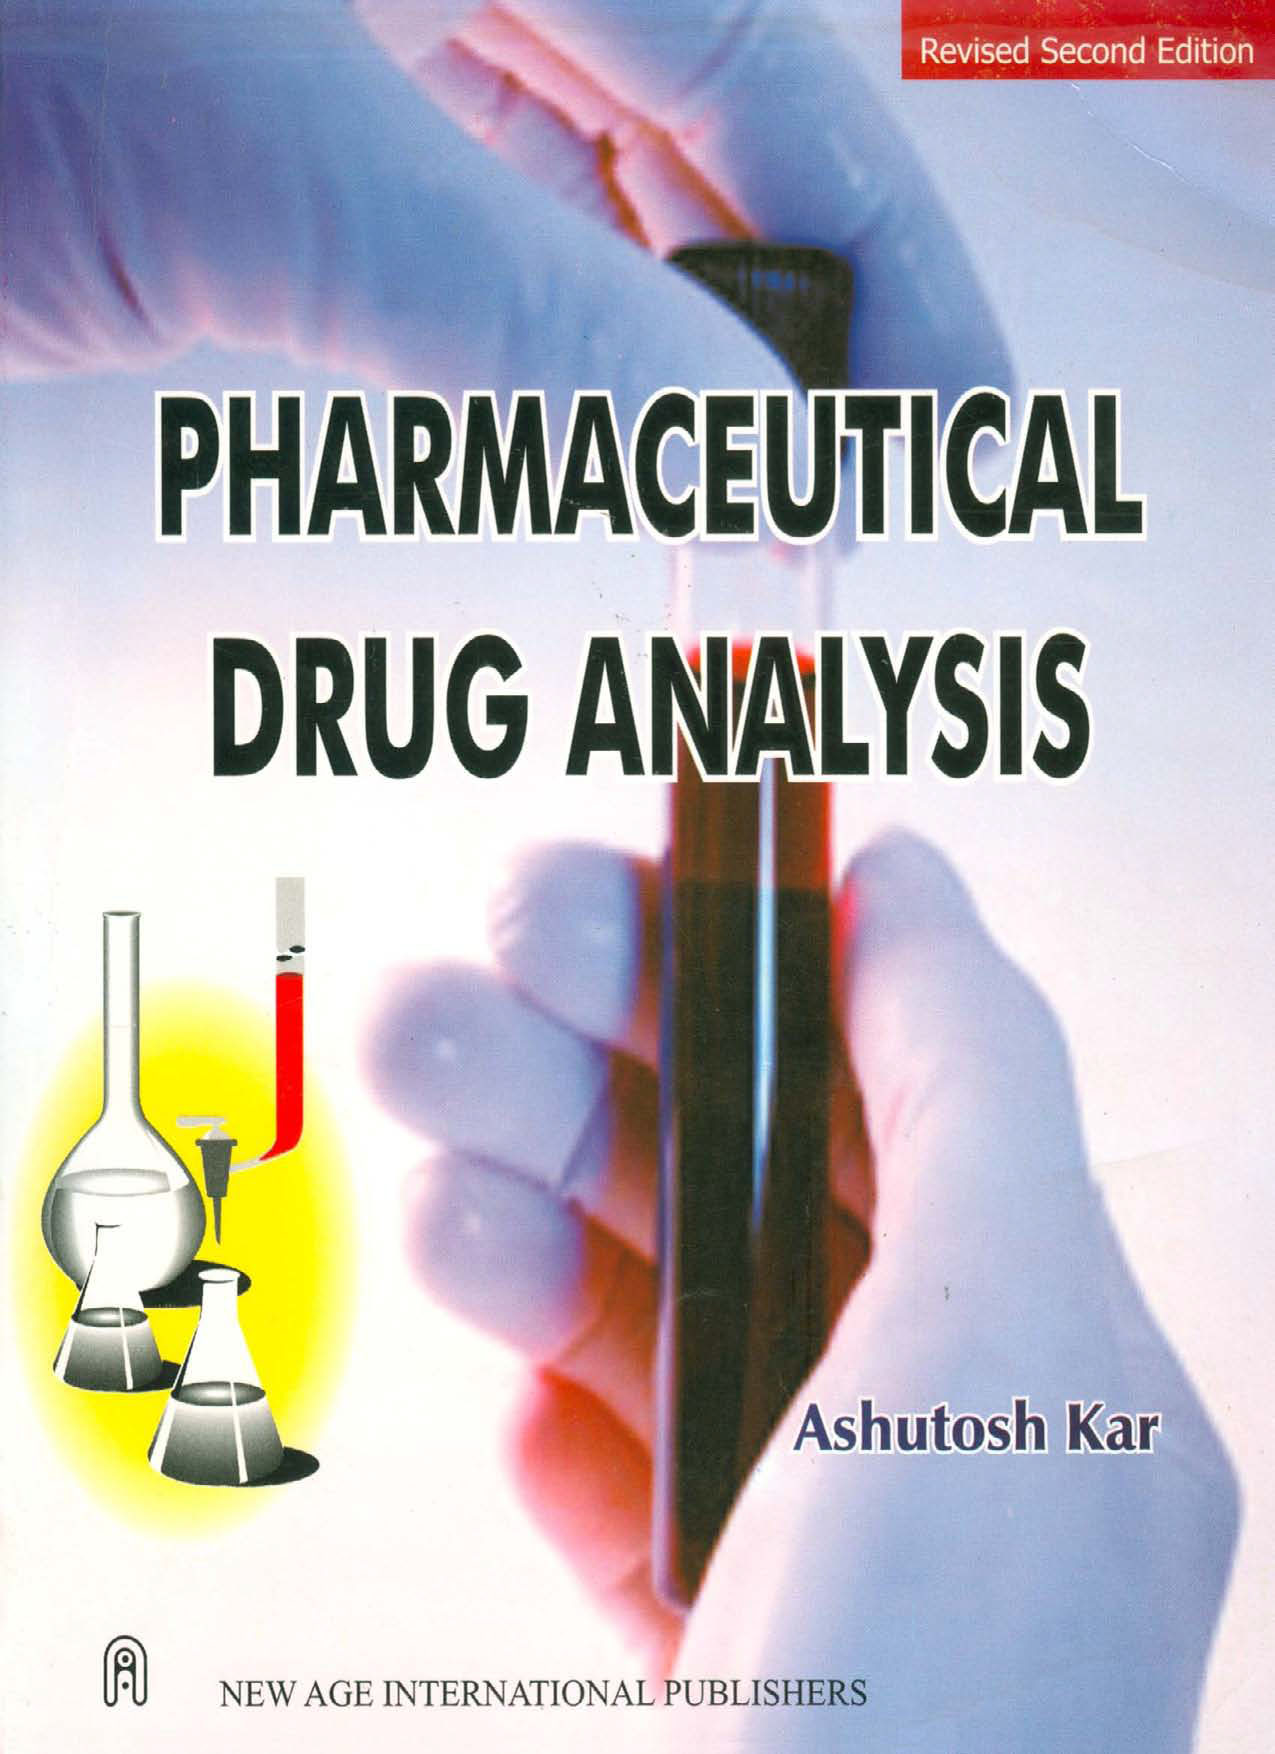 Pharmaceutical drug analysis